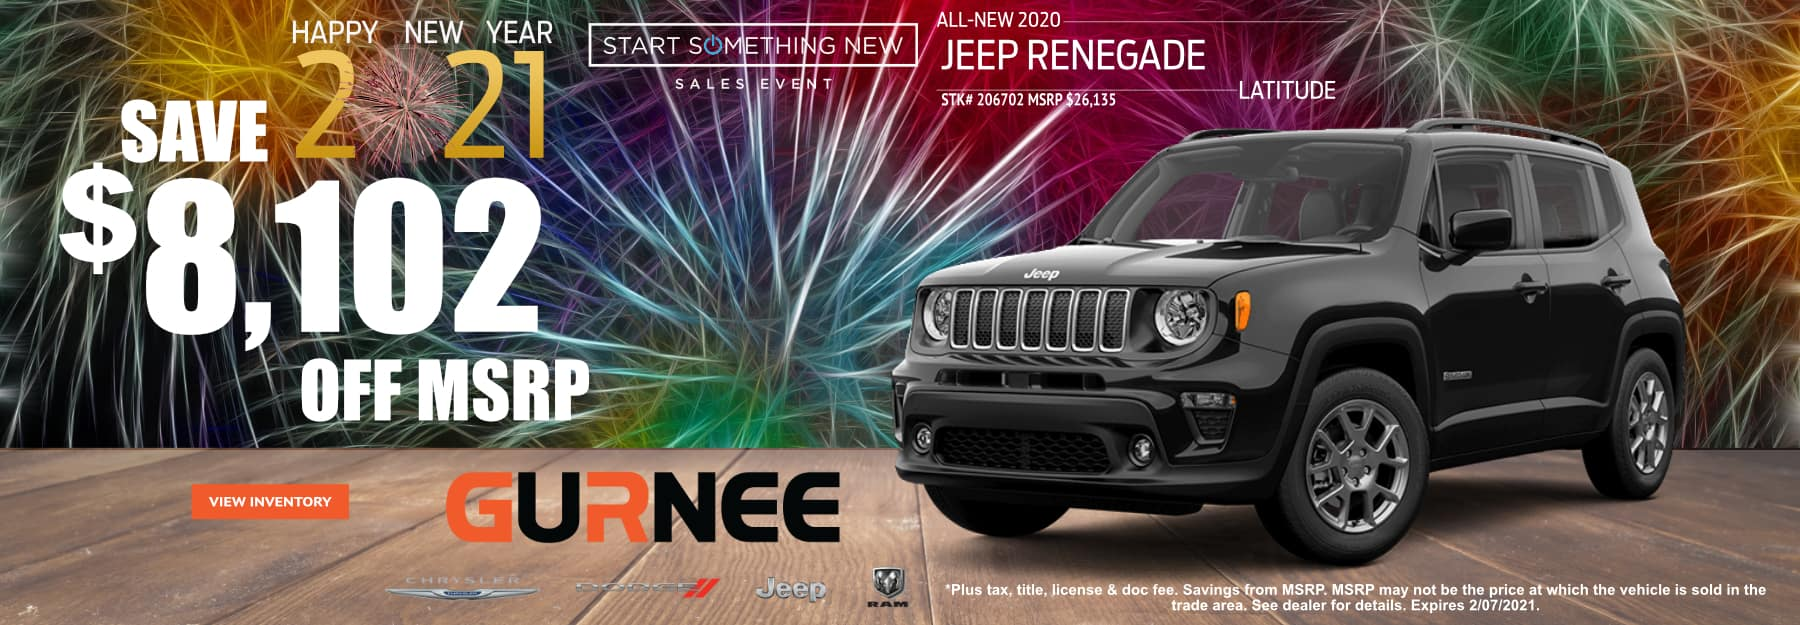 January-2021 RENEGADE_GURNEE